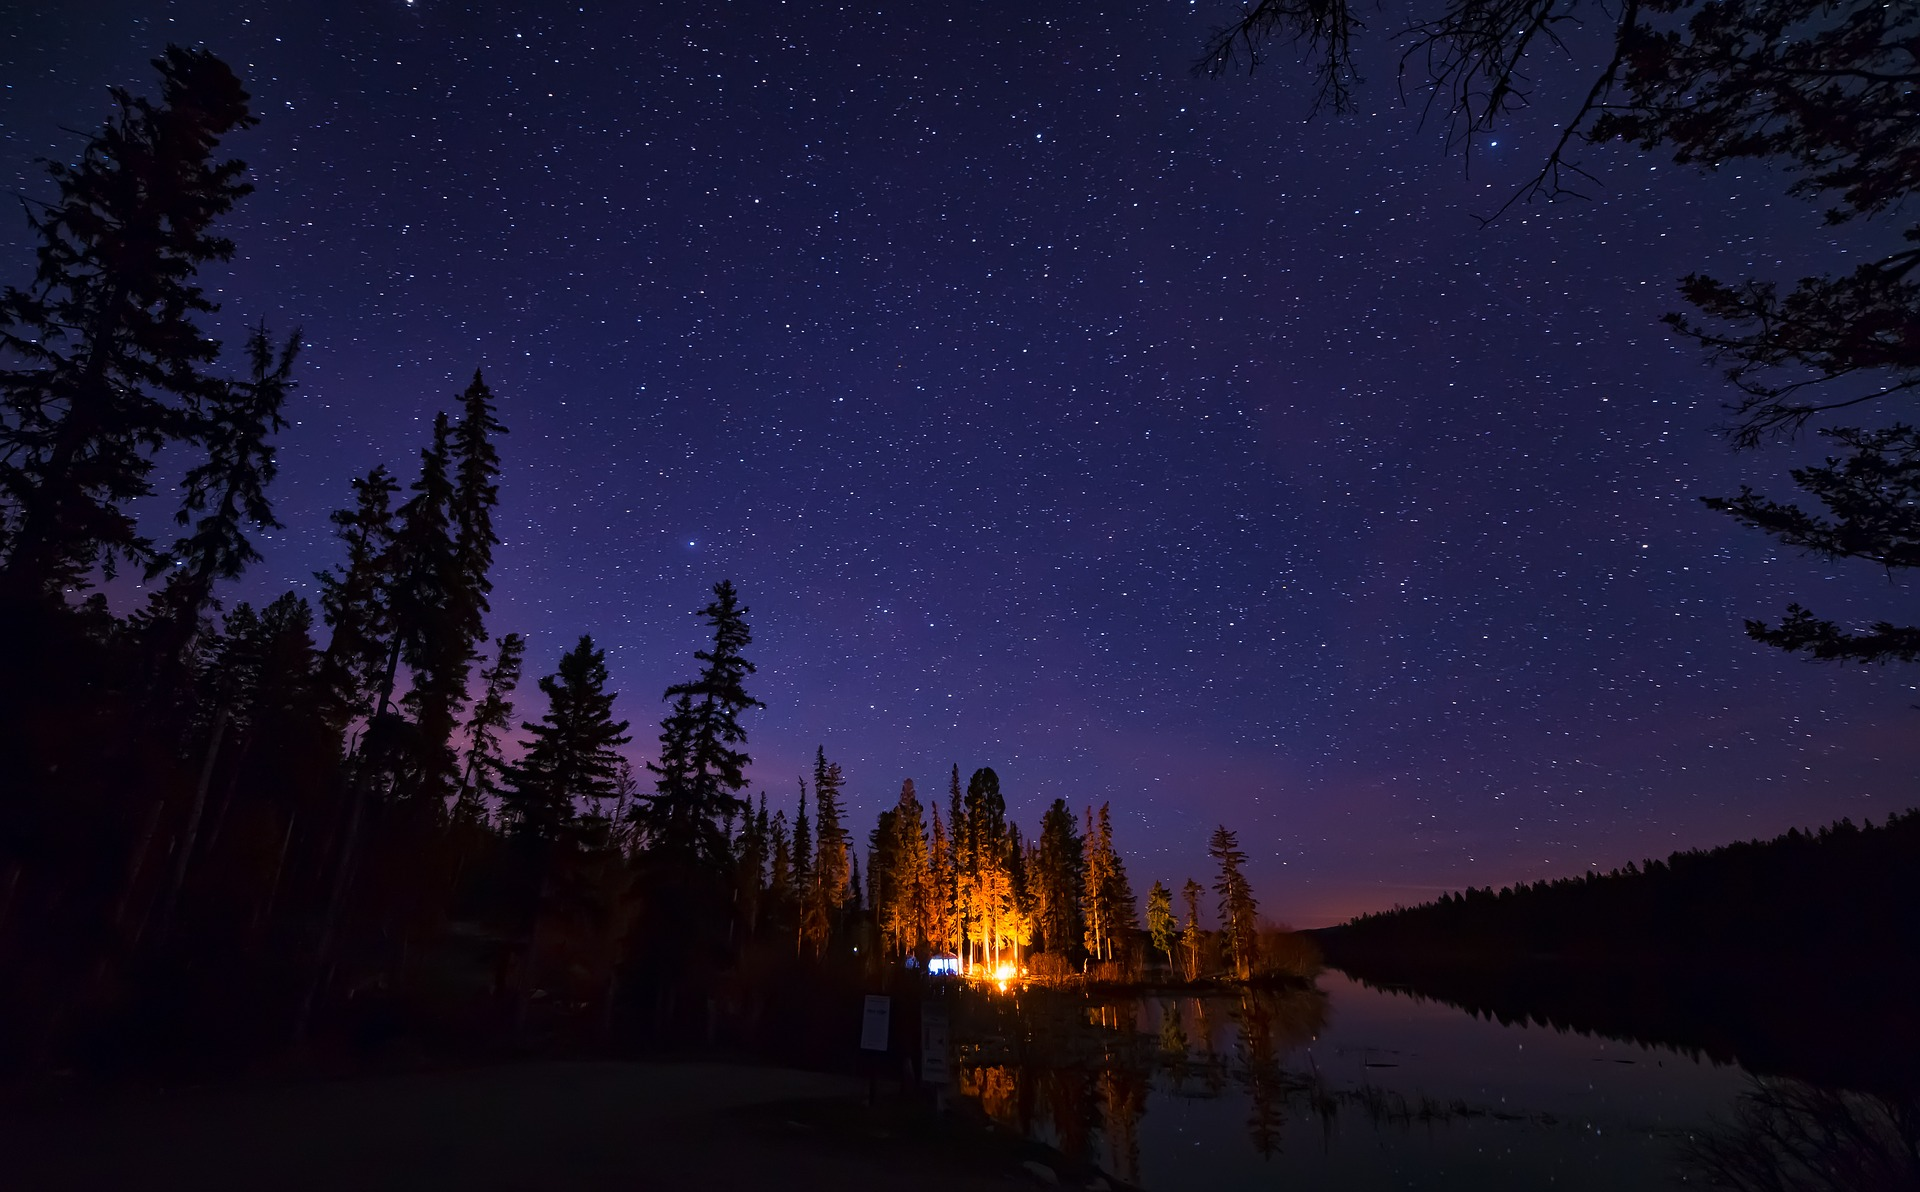 Starry Sky with fir tree silhouettes